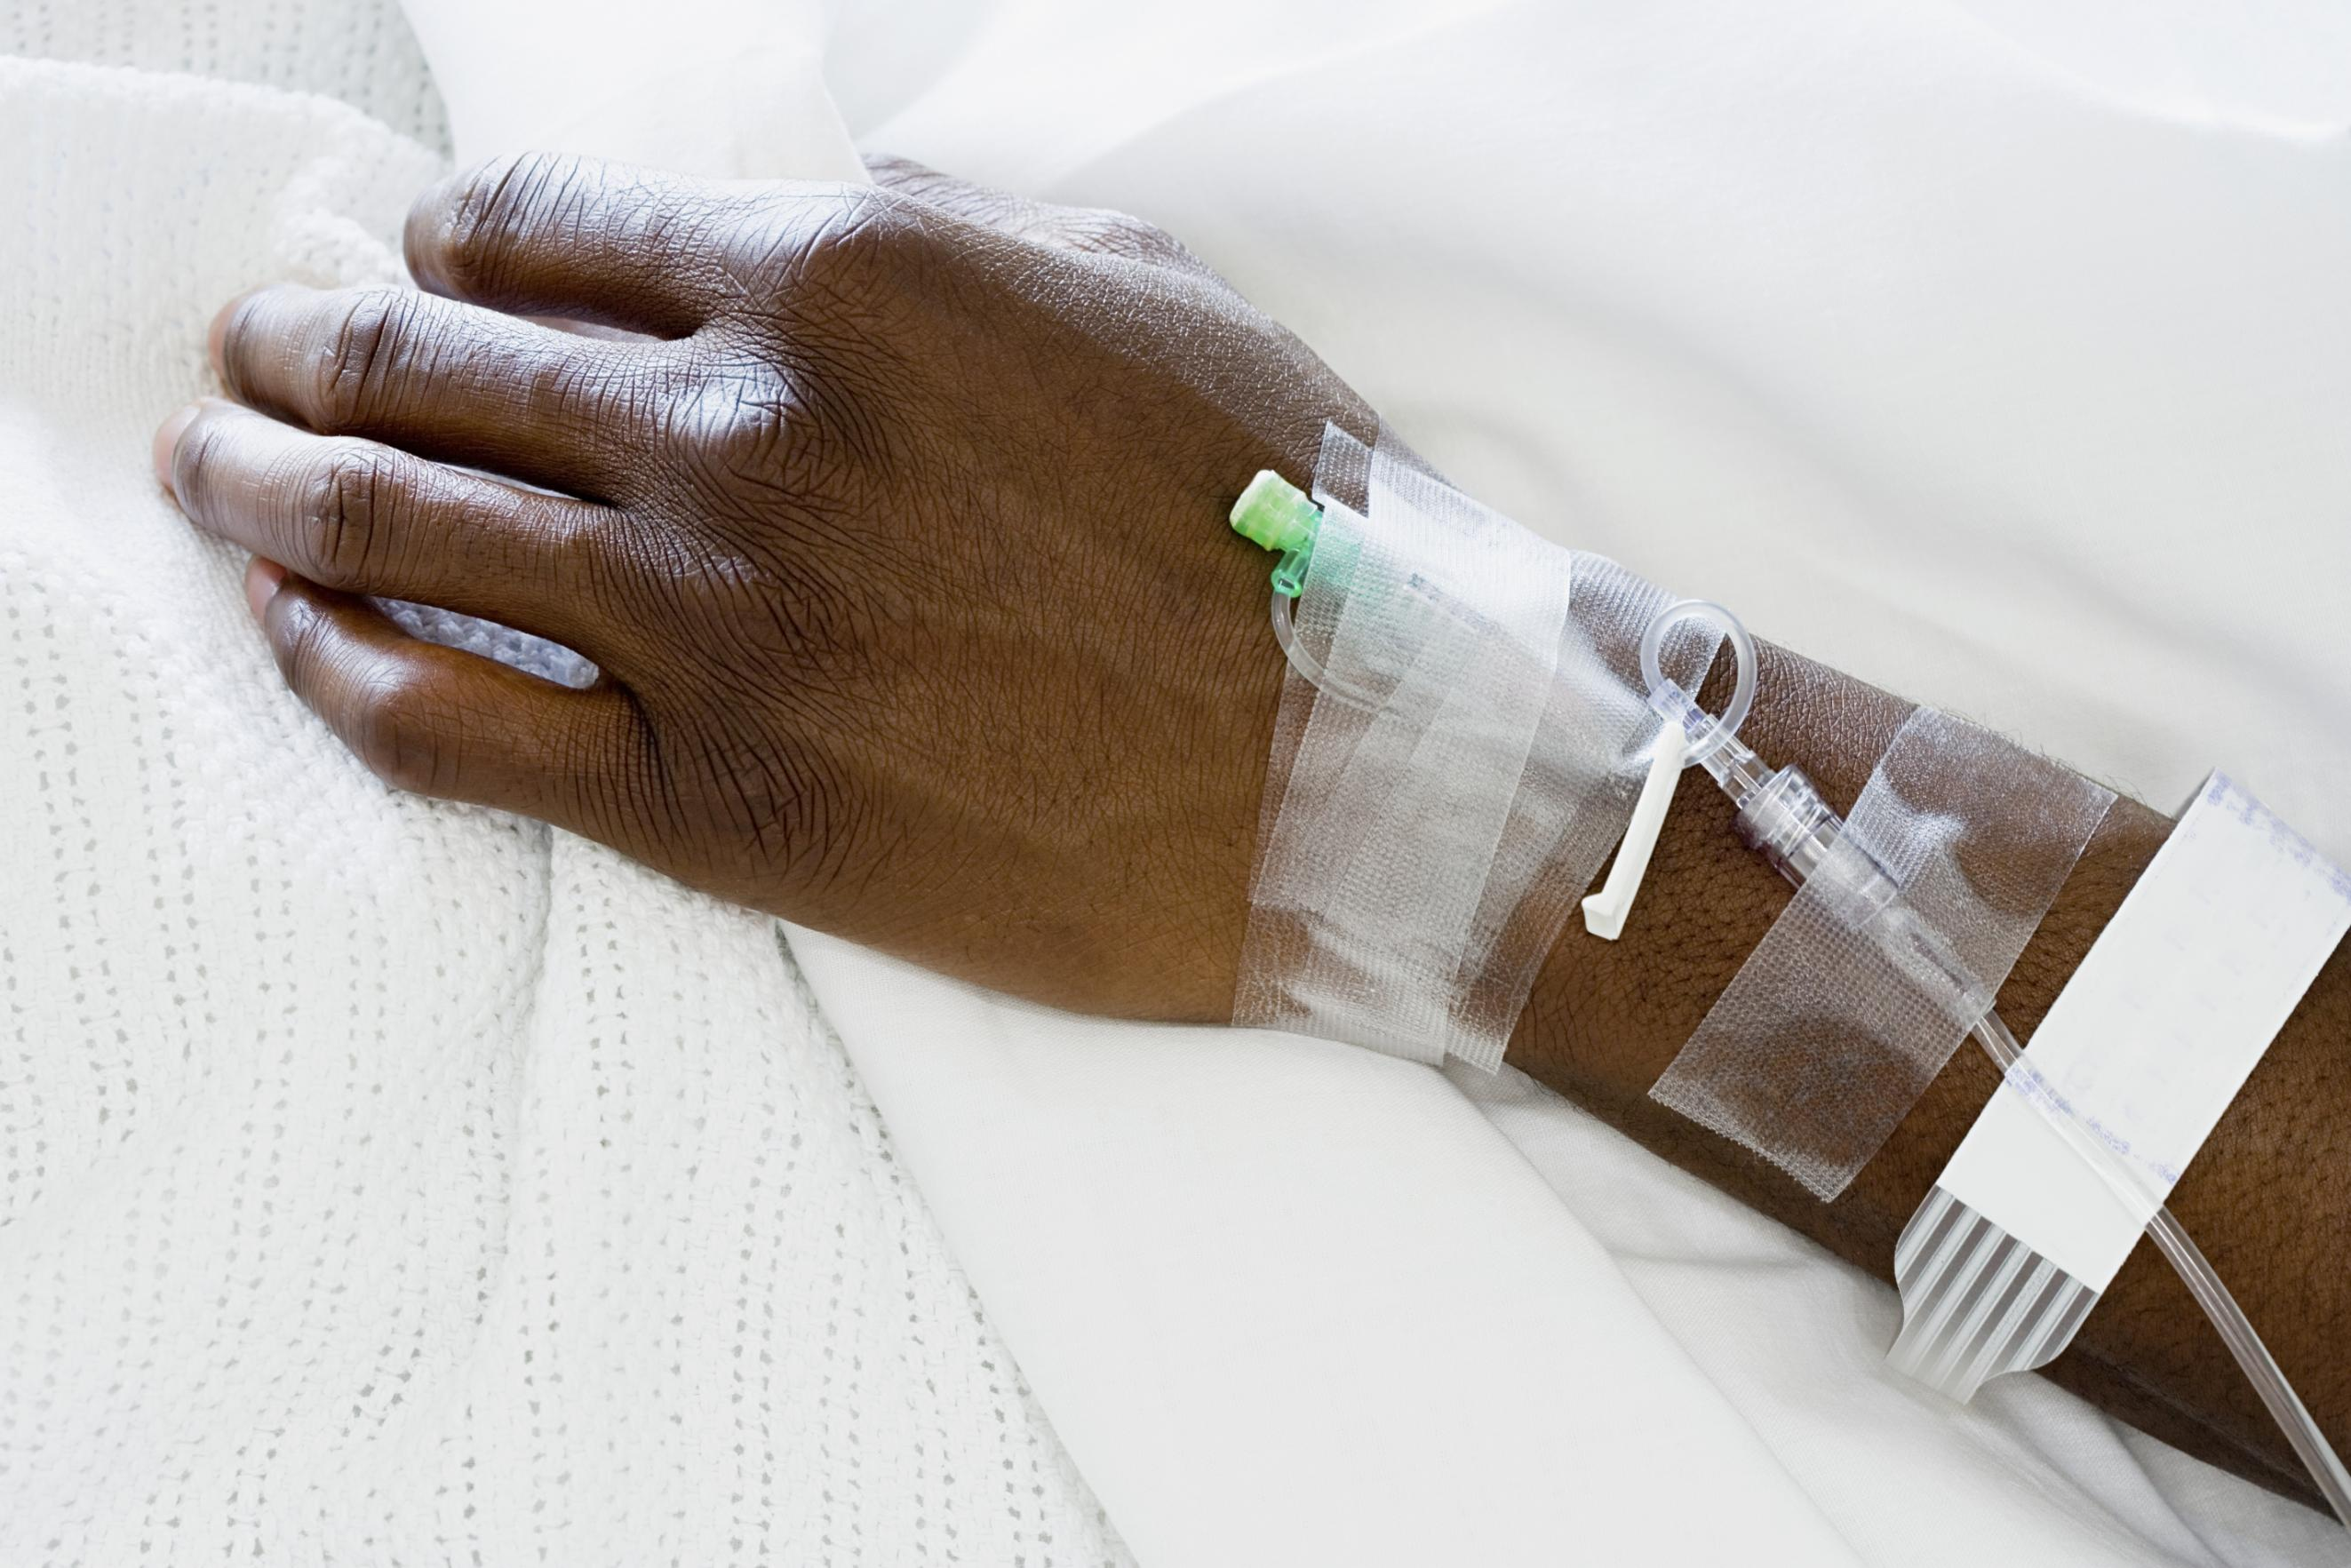 Black adults report bias in health care at higher rates than White and Latino people, study finds